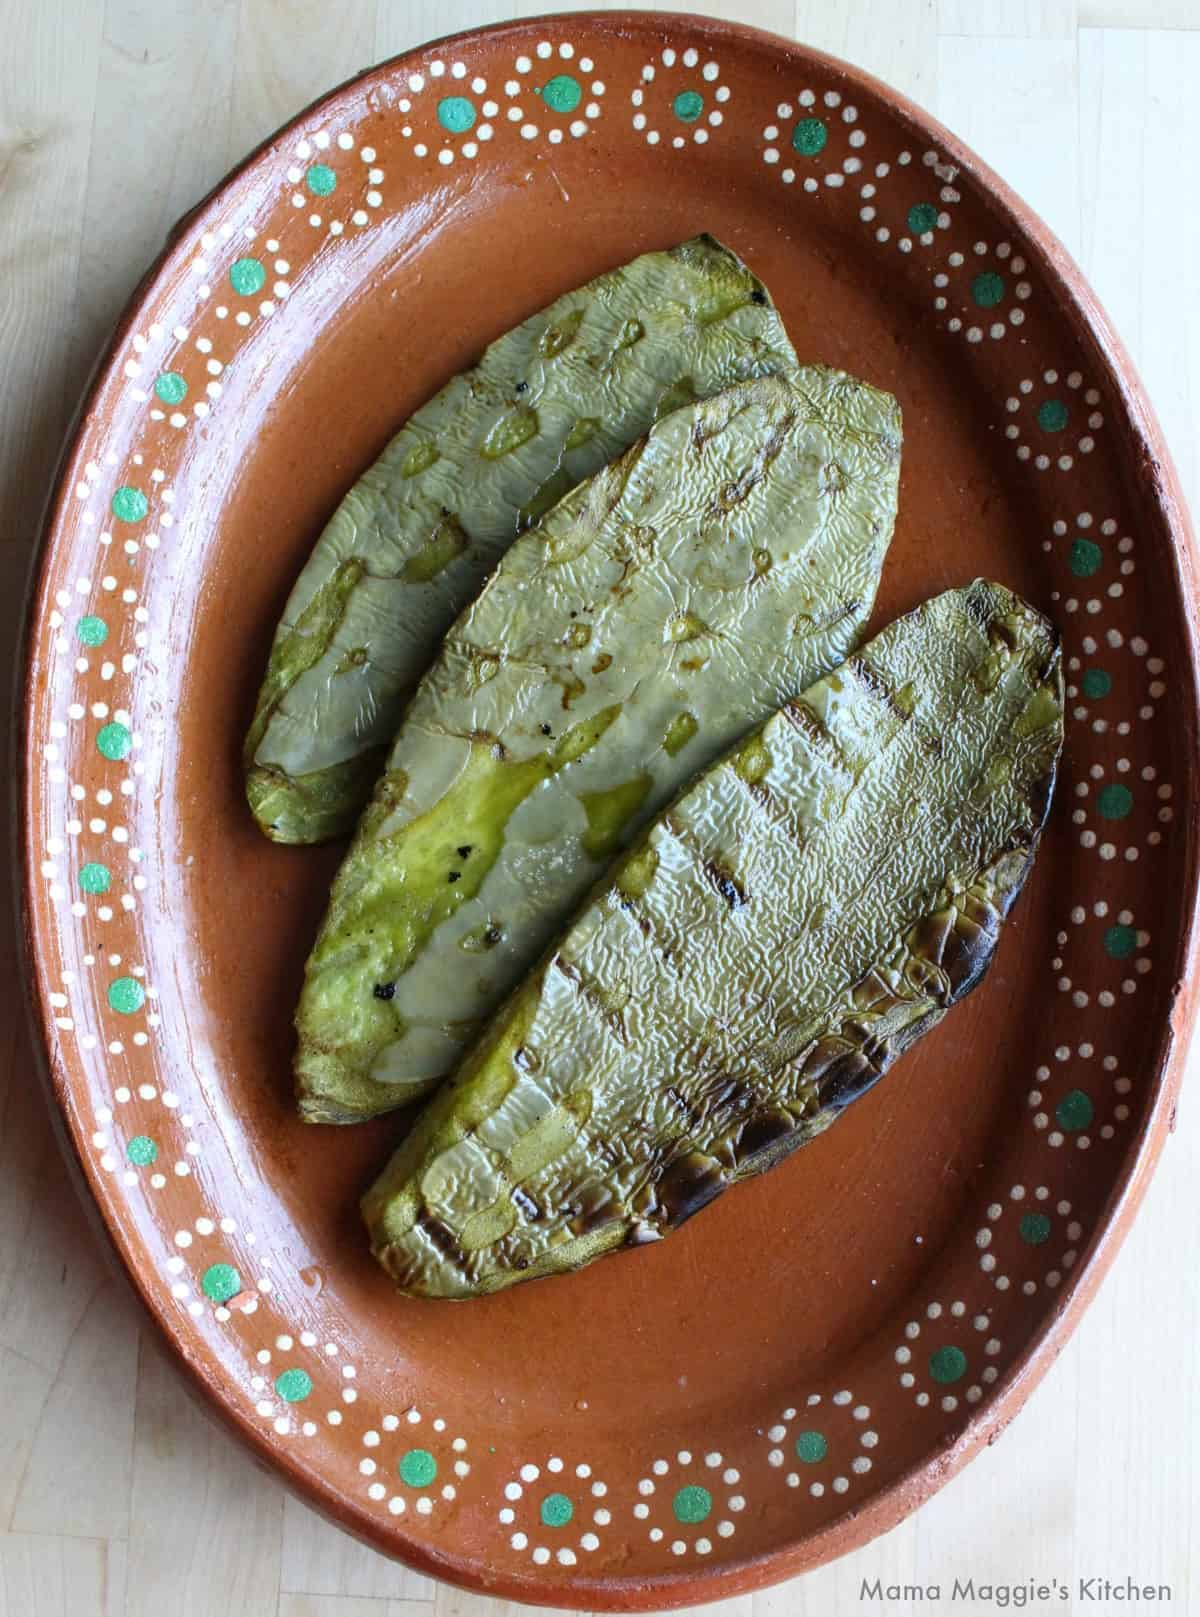 Grilled cactus on a decorative clay Mexican plate.